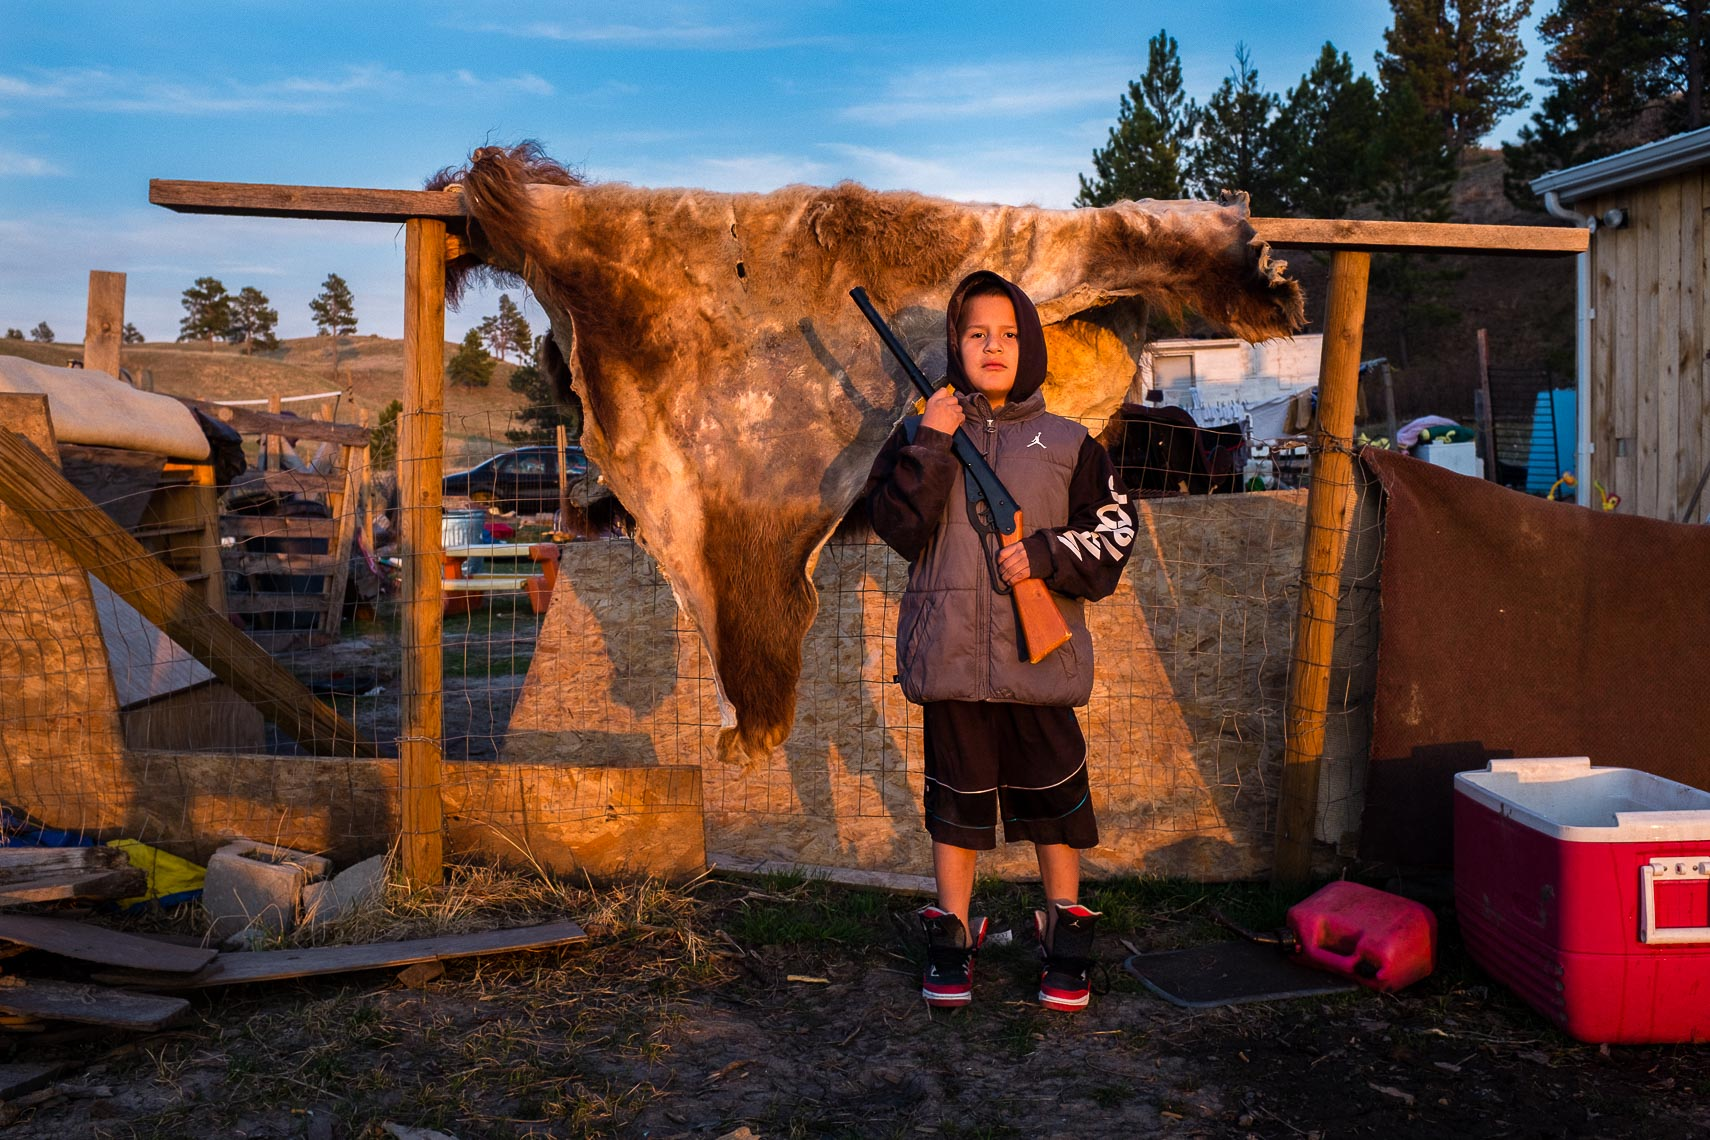 patrick_cavan_brown_arelene_catches_the_enemy_pine_ridge_indian_reservation-3217